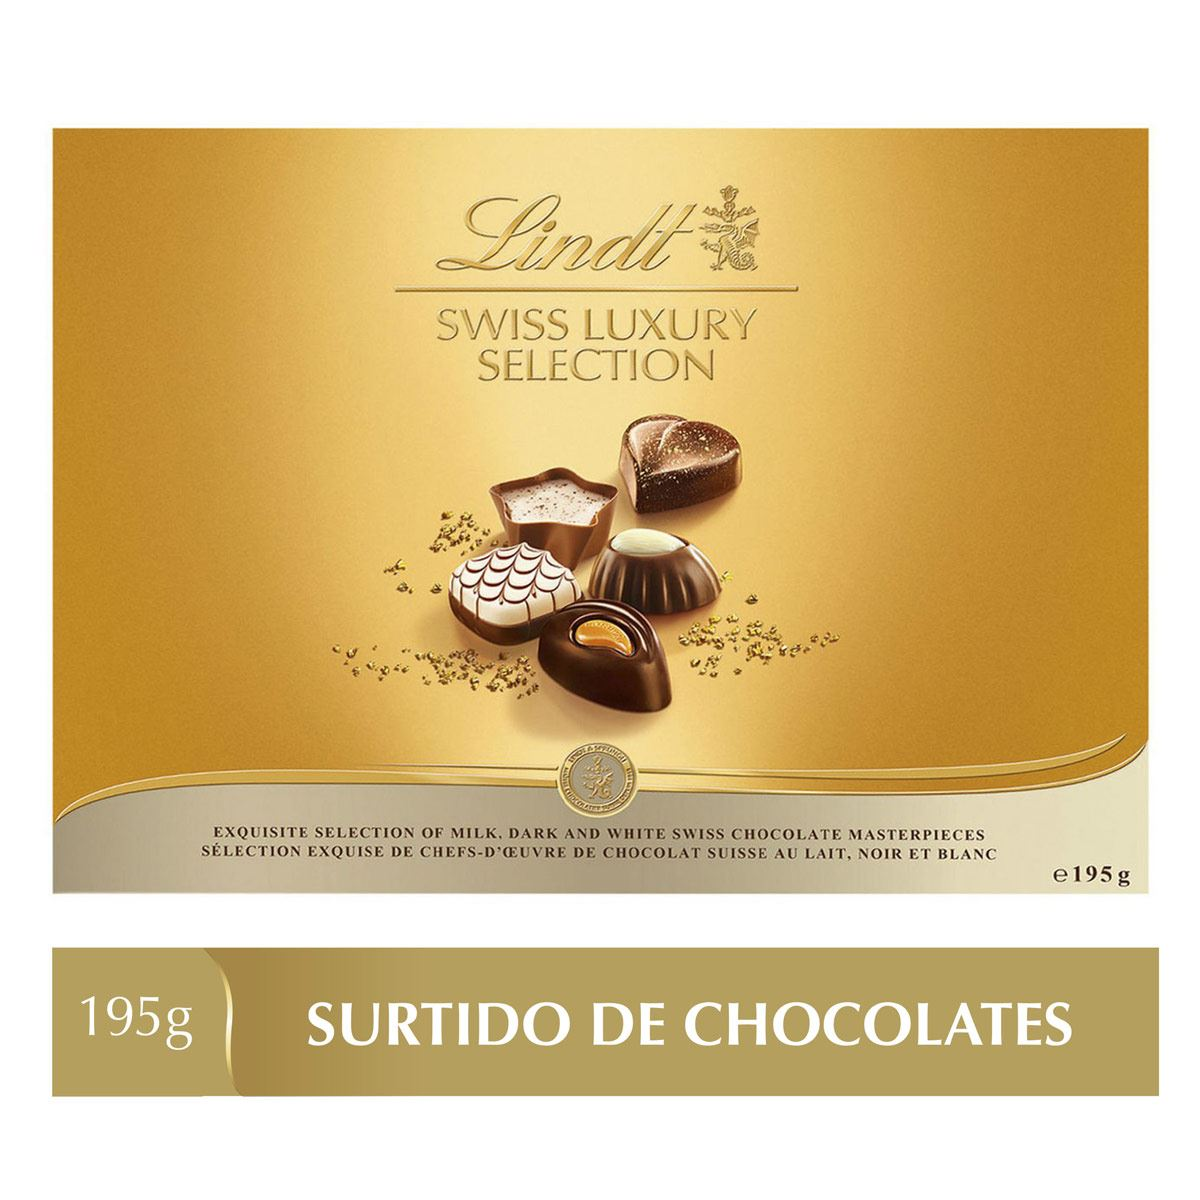 Lindt Swiss Luxury Selection,195g